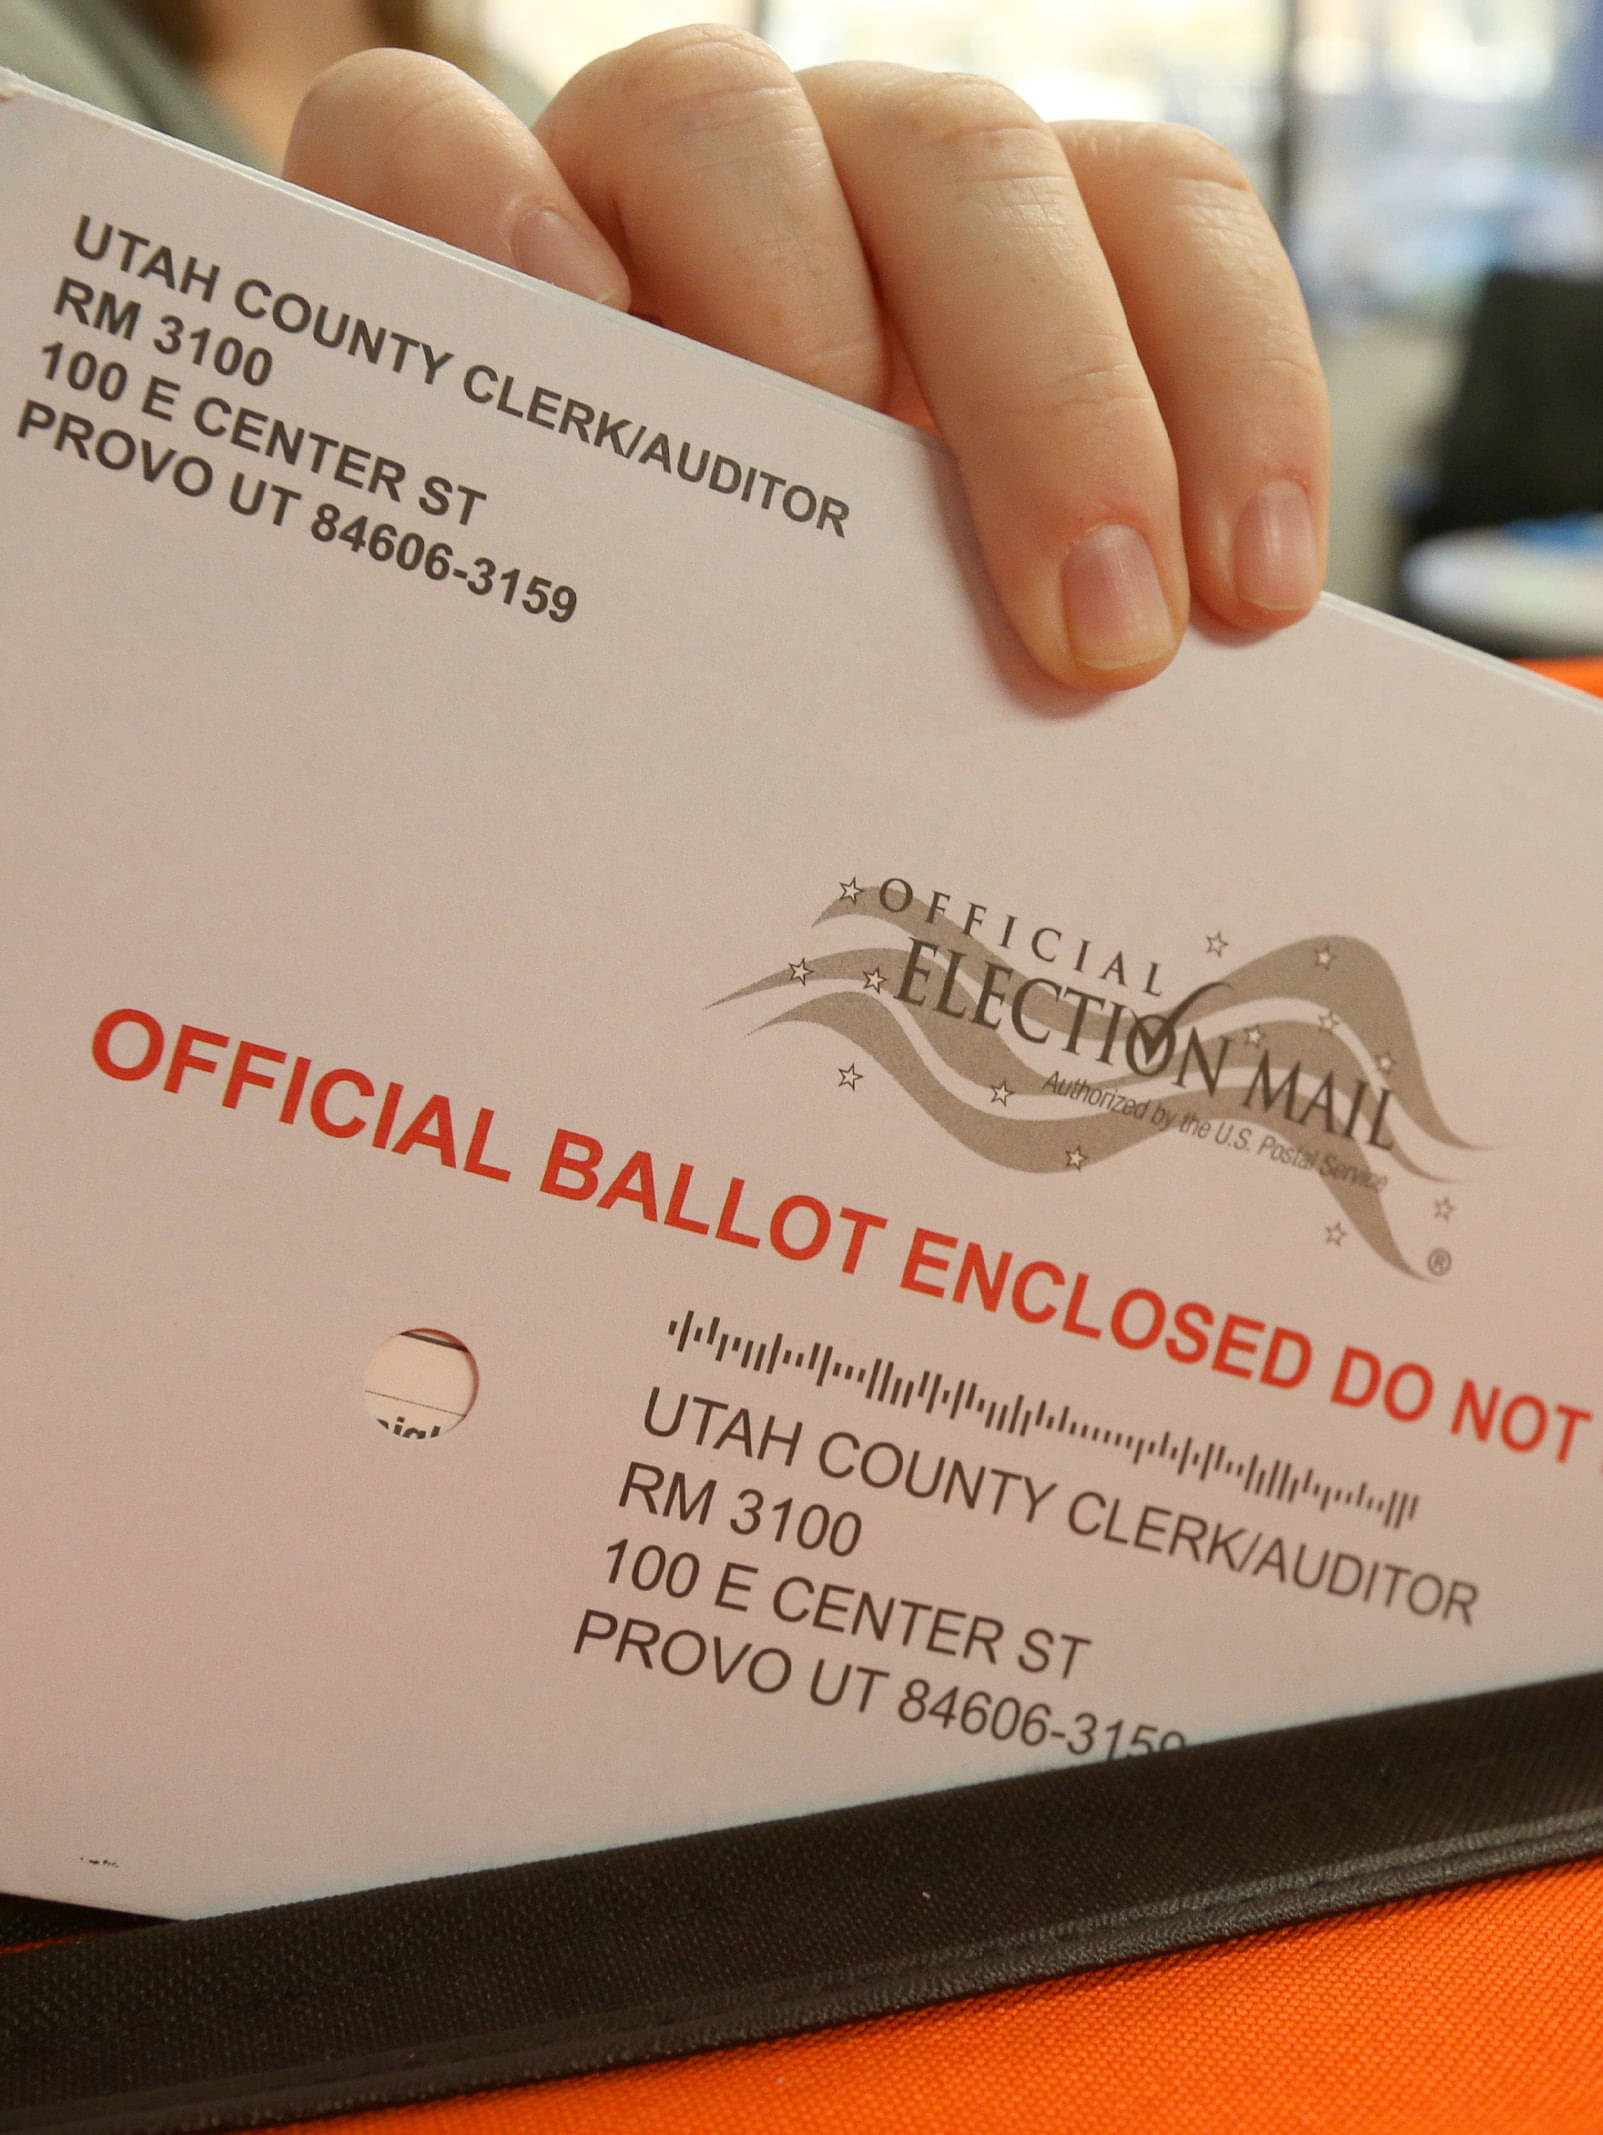 SOME BALLOT REQUESTS MAY BE AFFECTED BY COUNTY CYBER ATTACK